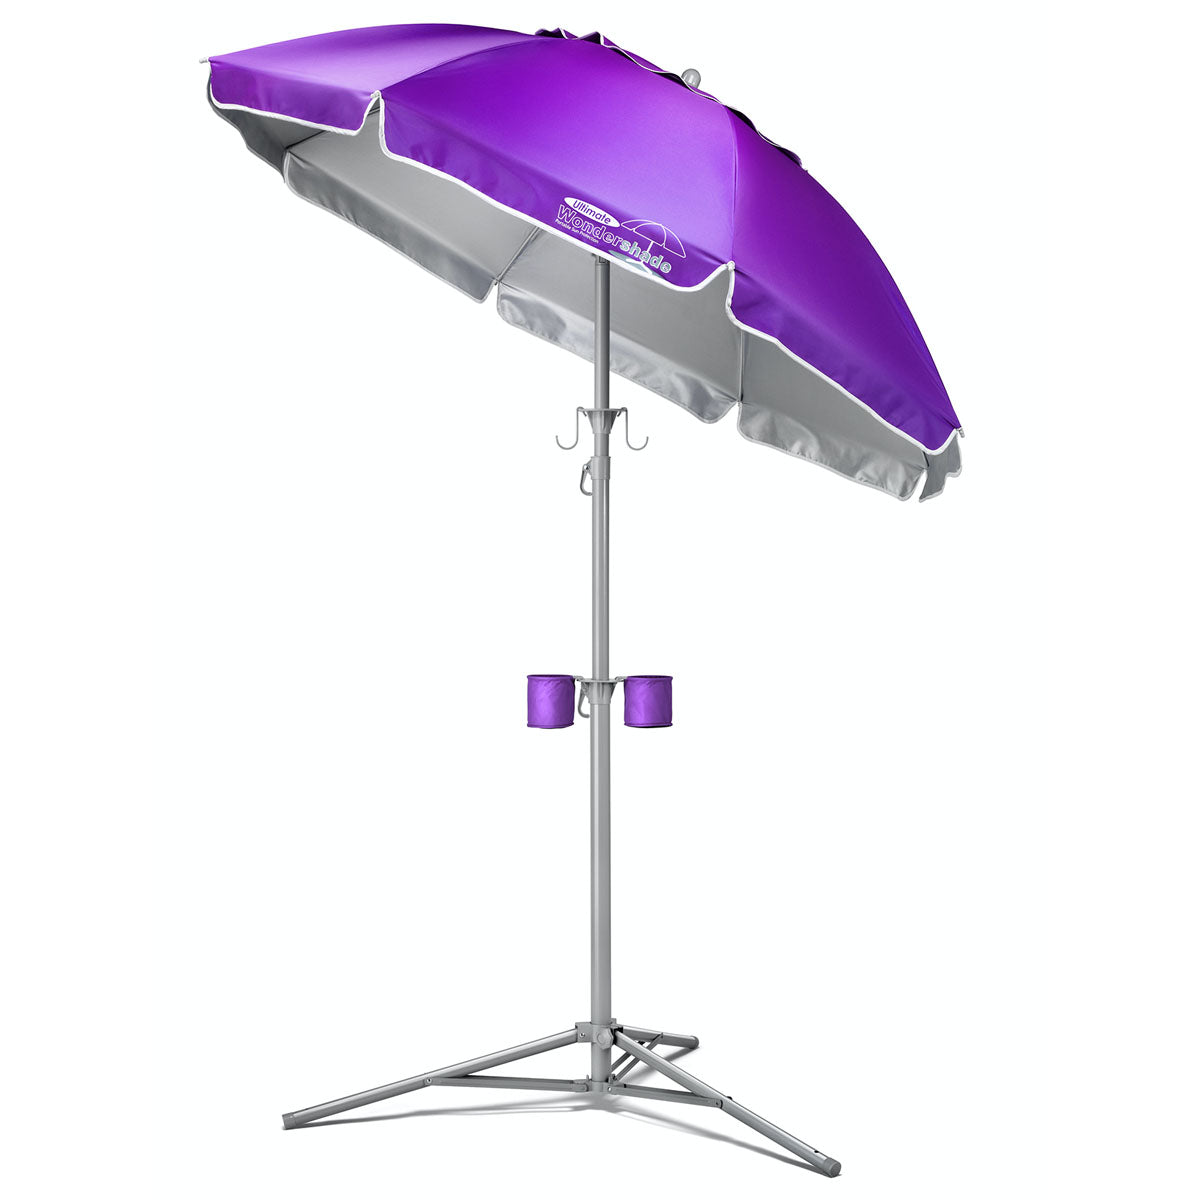 Wondershade Ultimate Portable Sun Shade Umbrella, Lightweight Adjustable Instant Sun Protection - Purple